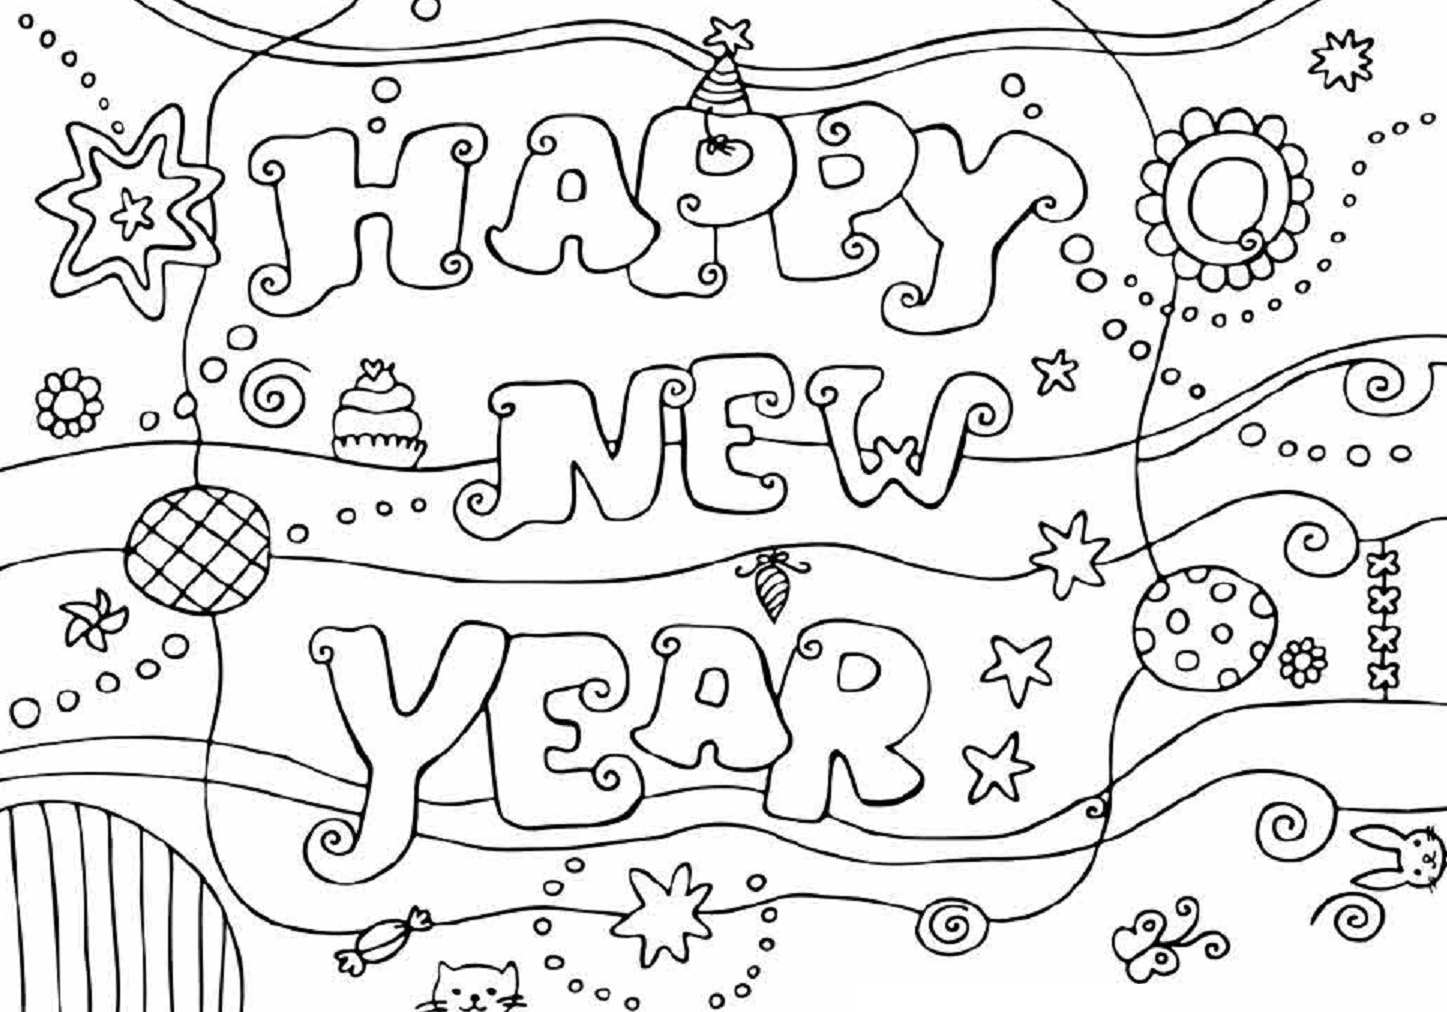 Happy New Year 2015 Coloring Page Free Wallpaper Esl Kids